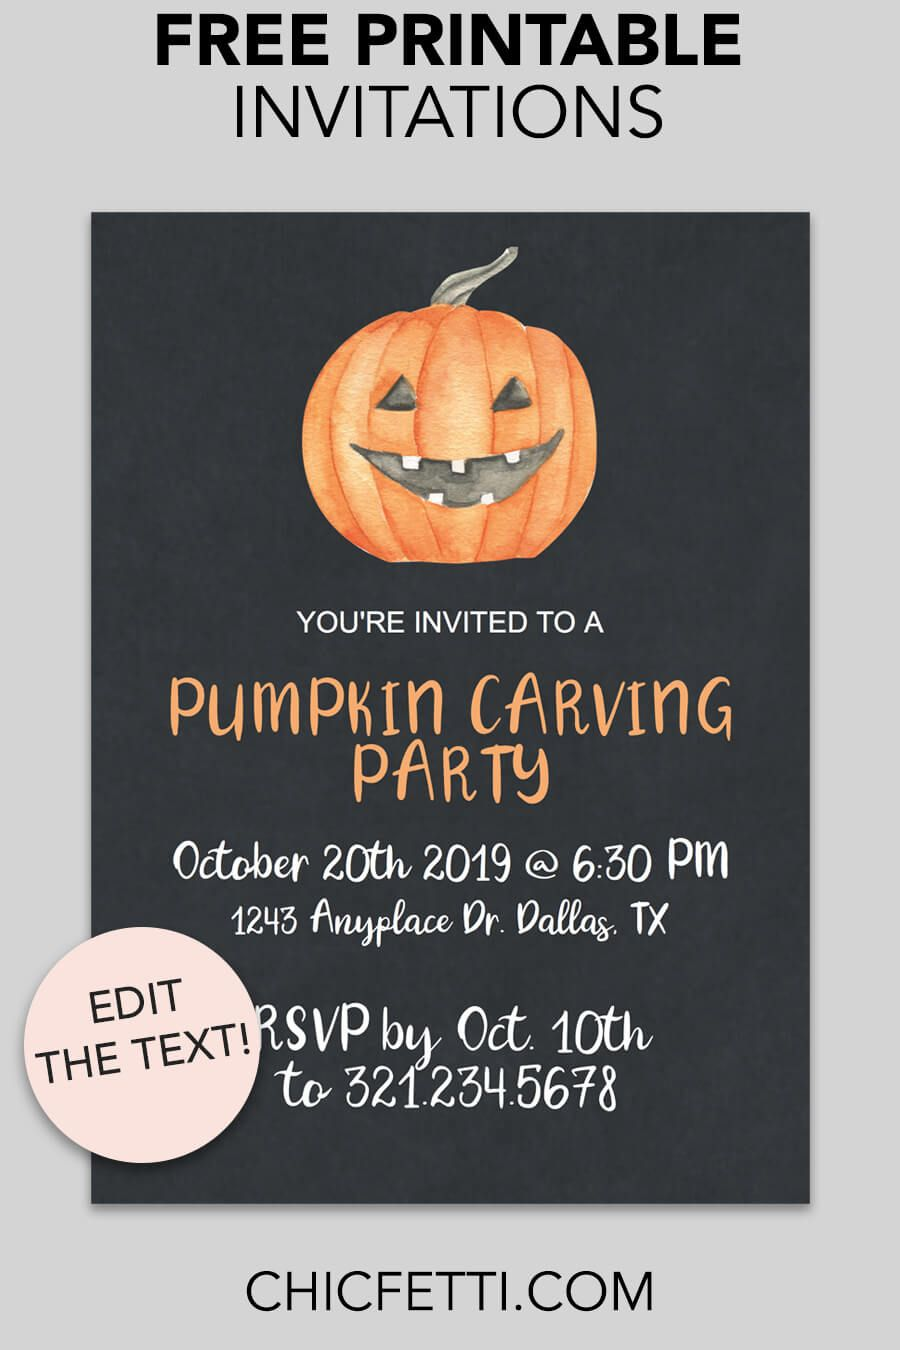 Dallas Texas Halloween Party Oct. 20th 2020 Jack o' Lantern Printable Invitation | Pumpkin carving party